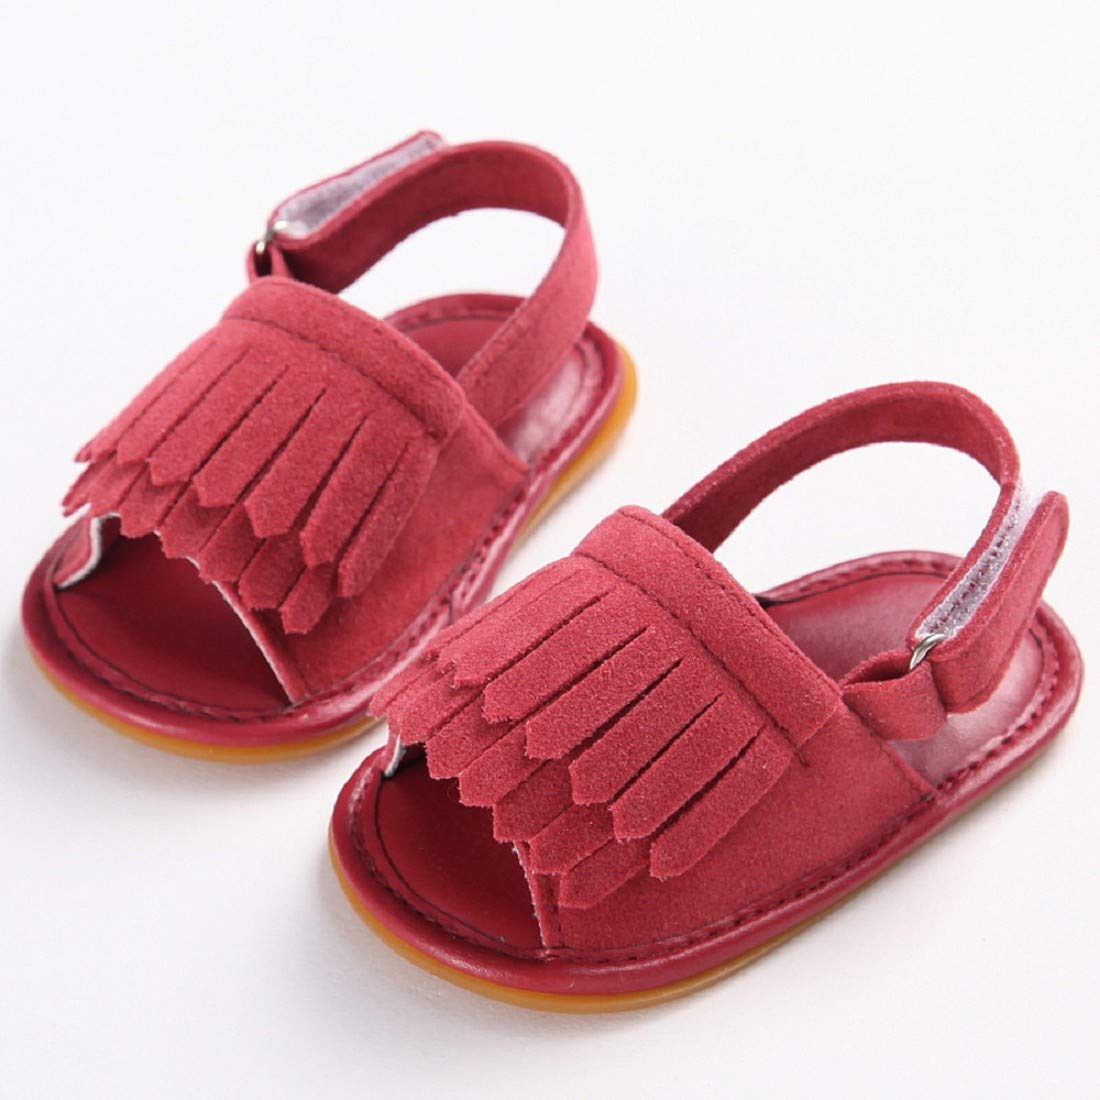 Infant Sandals FAPIZI Toddler Girl Crib Shoes Newborn Tassel Soft Sole Anti-Slip Baby Frosted Sneakers